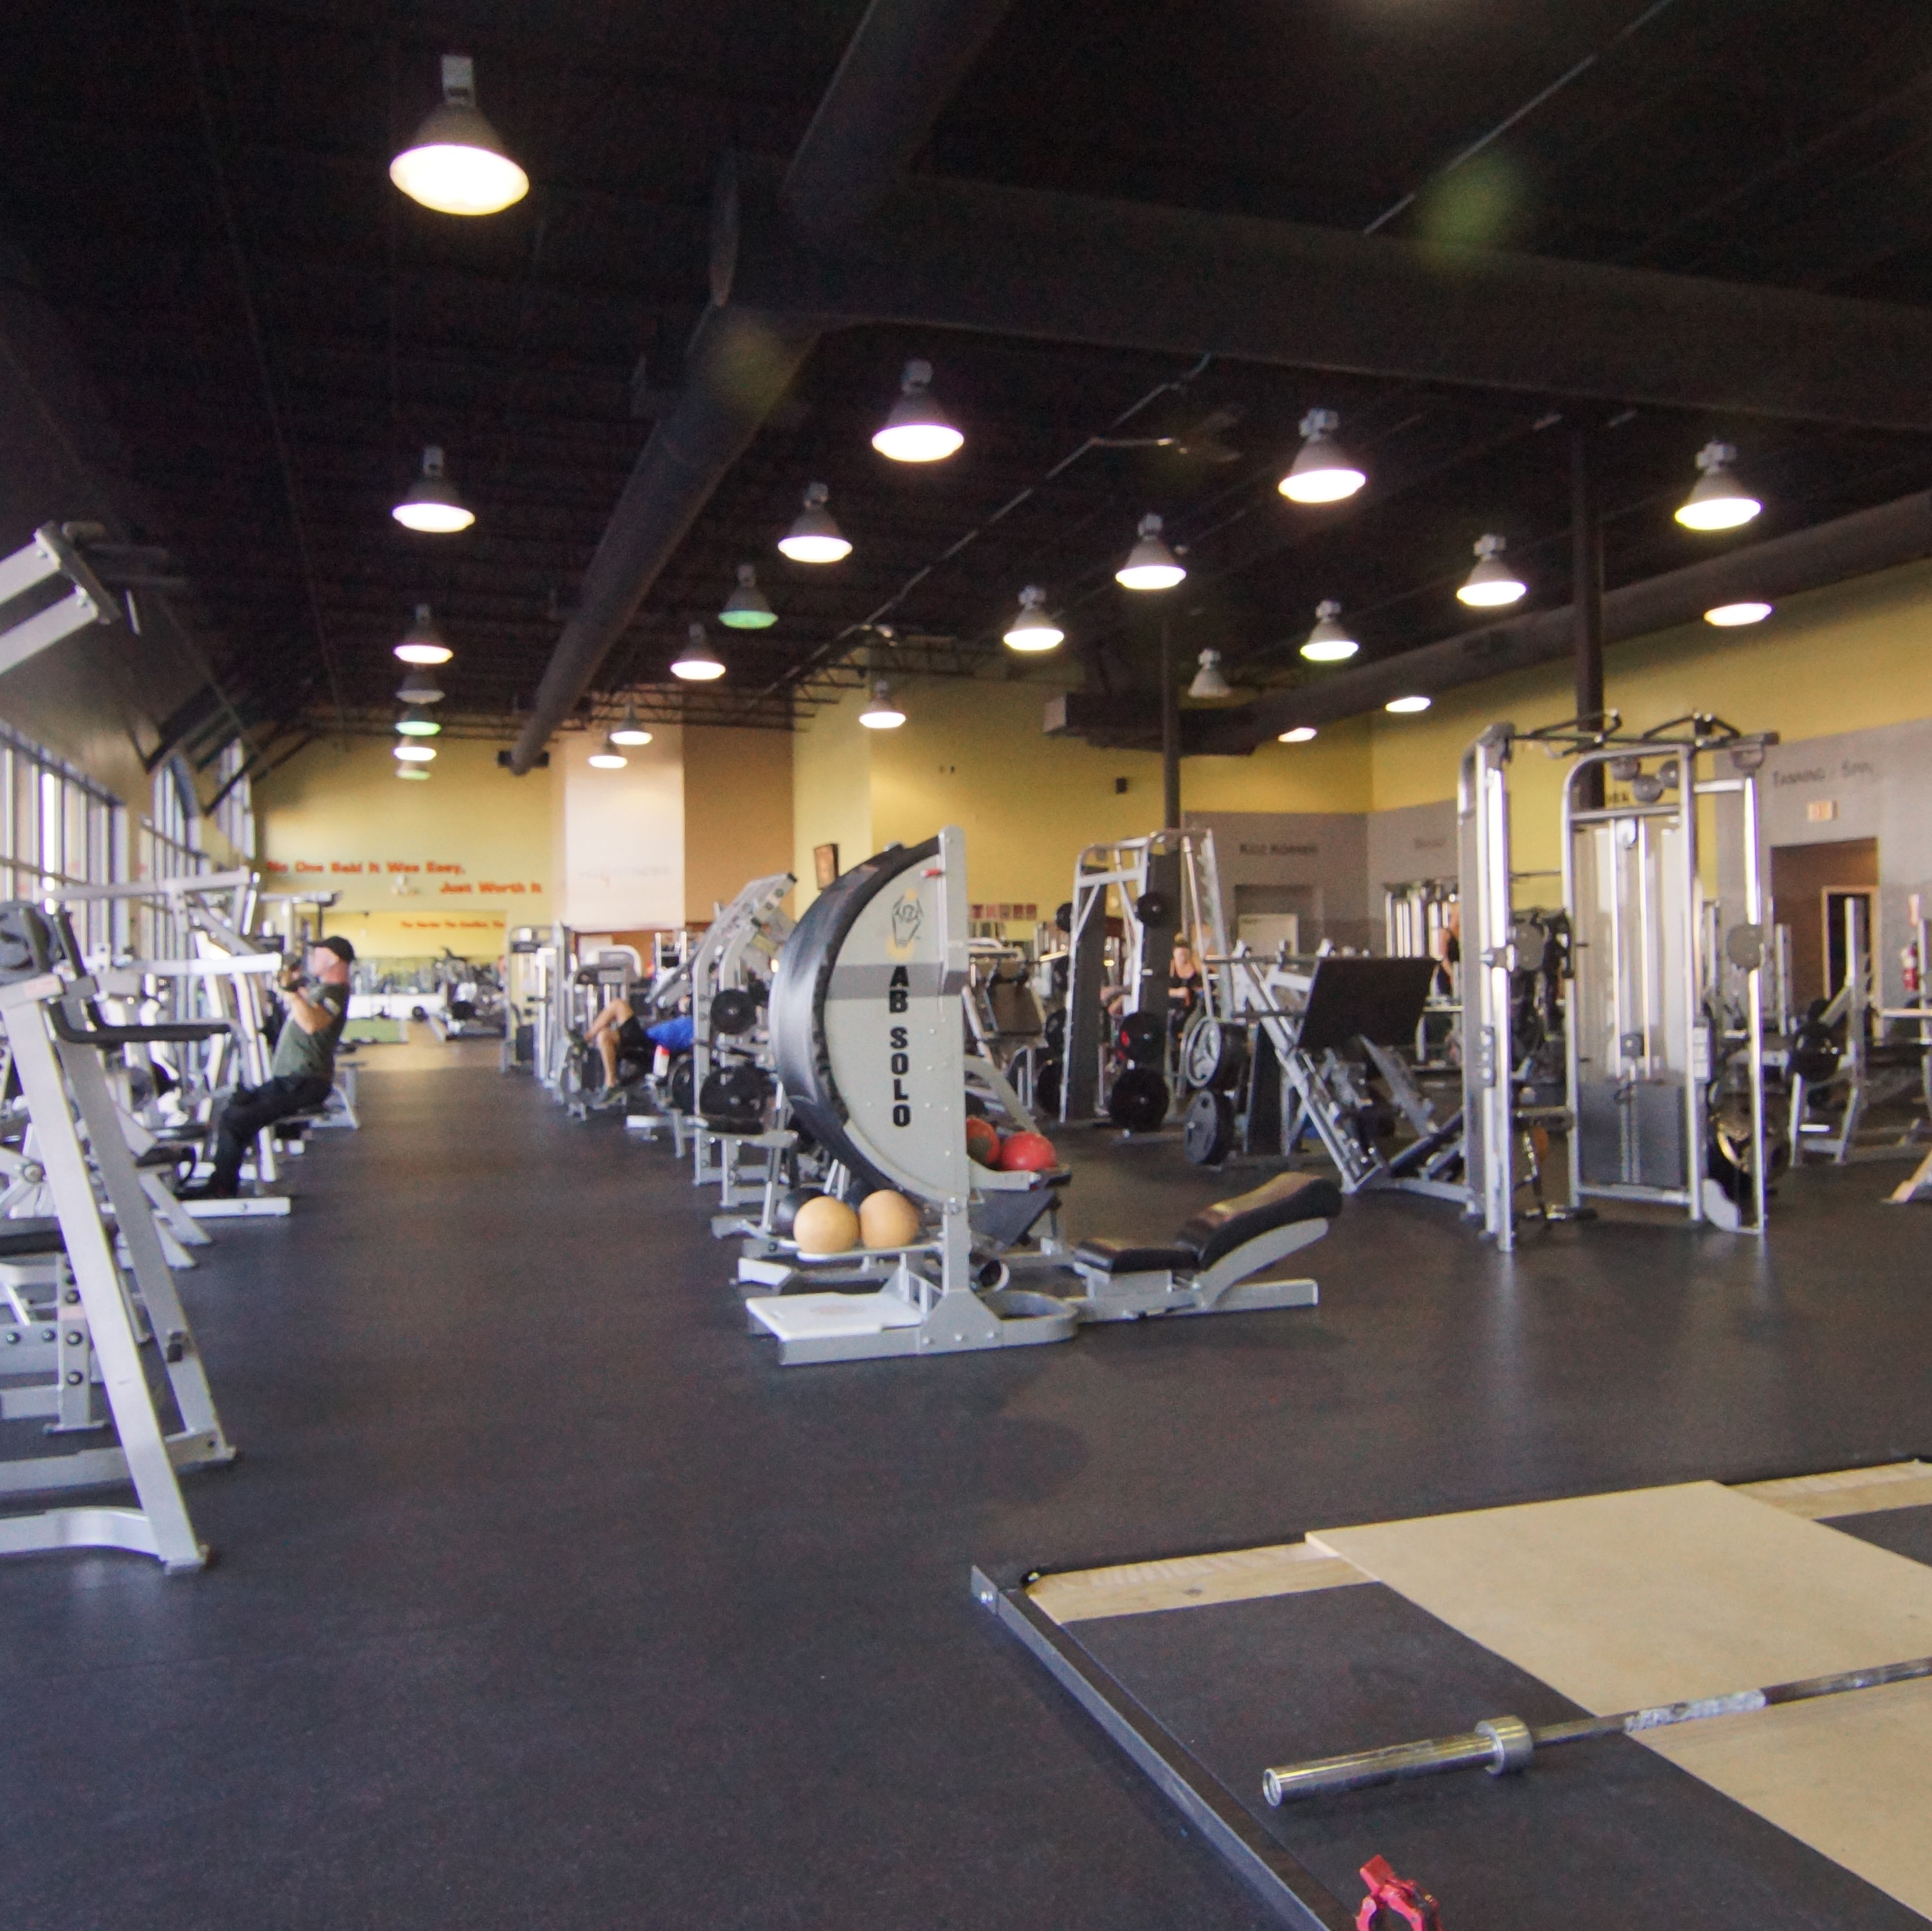 Spring hill fitness 24 7 gym home for Fitness 24 7 mobilia